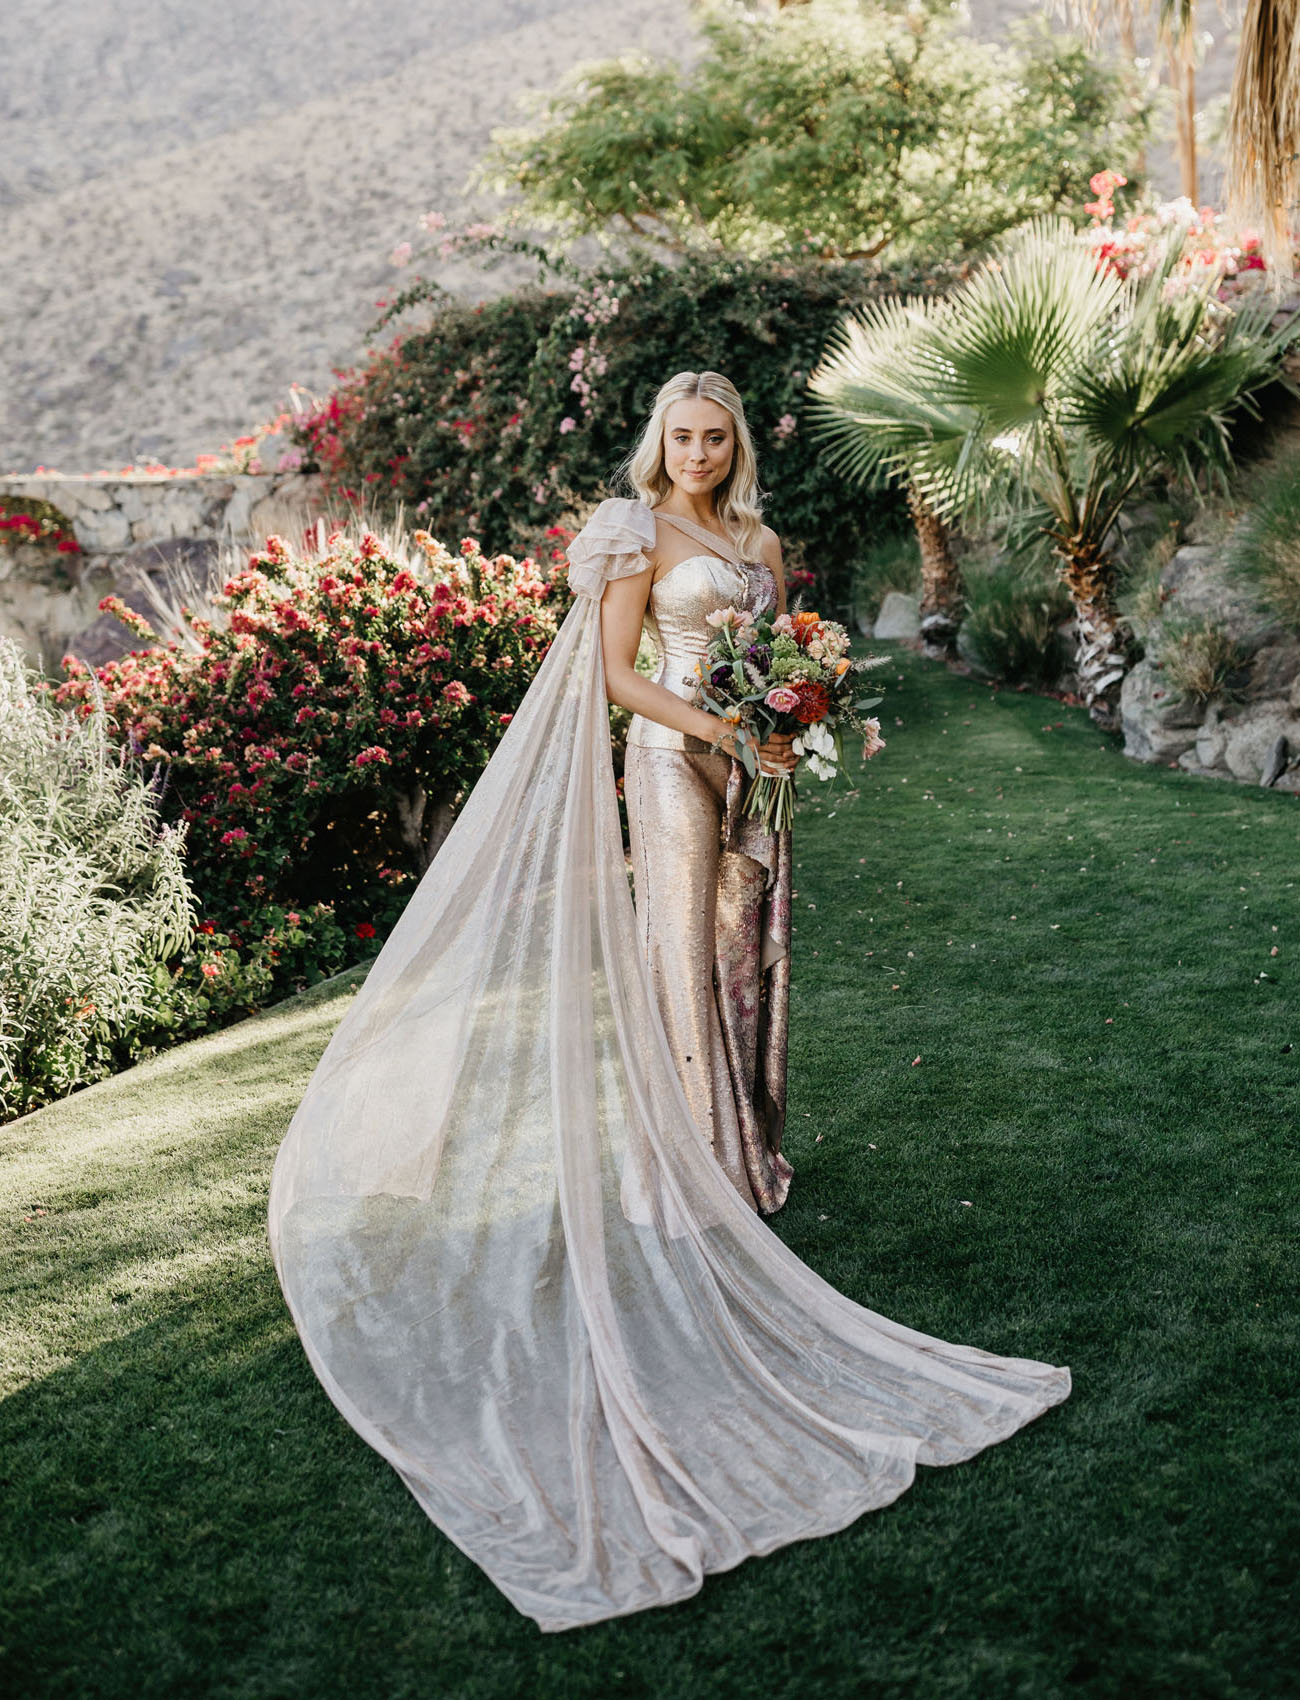 The bride was wearing a unique custom jumpsuit with a bustier, sequins and a long capelet with a train